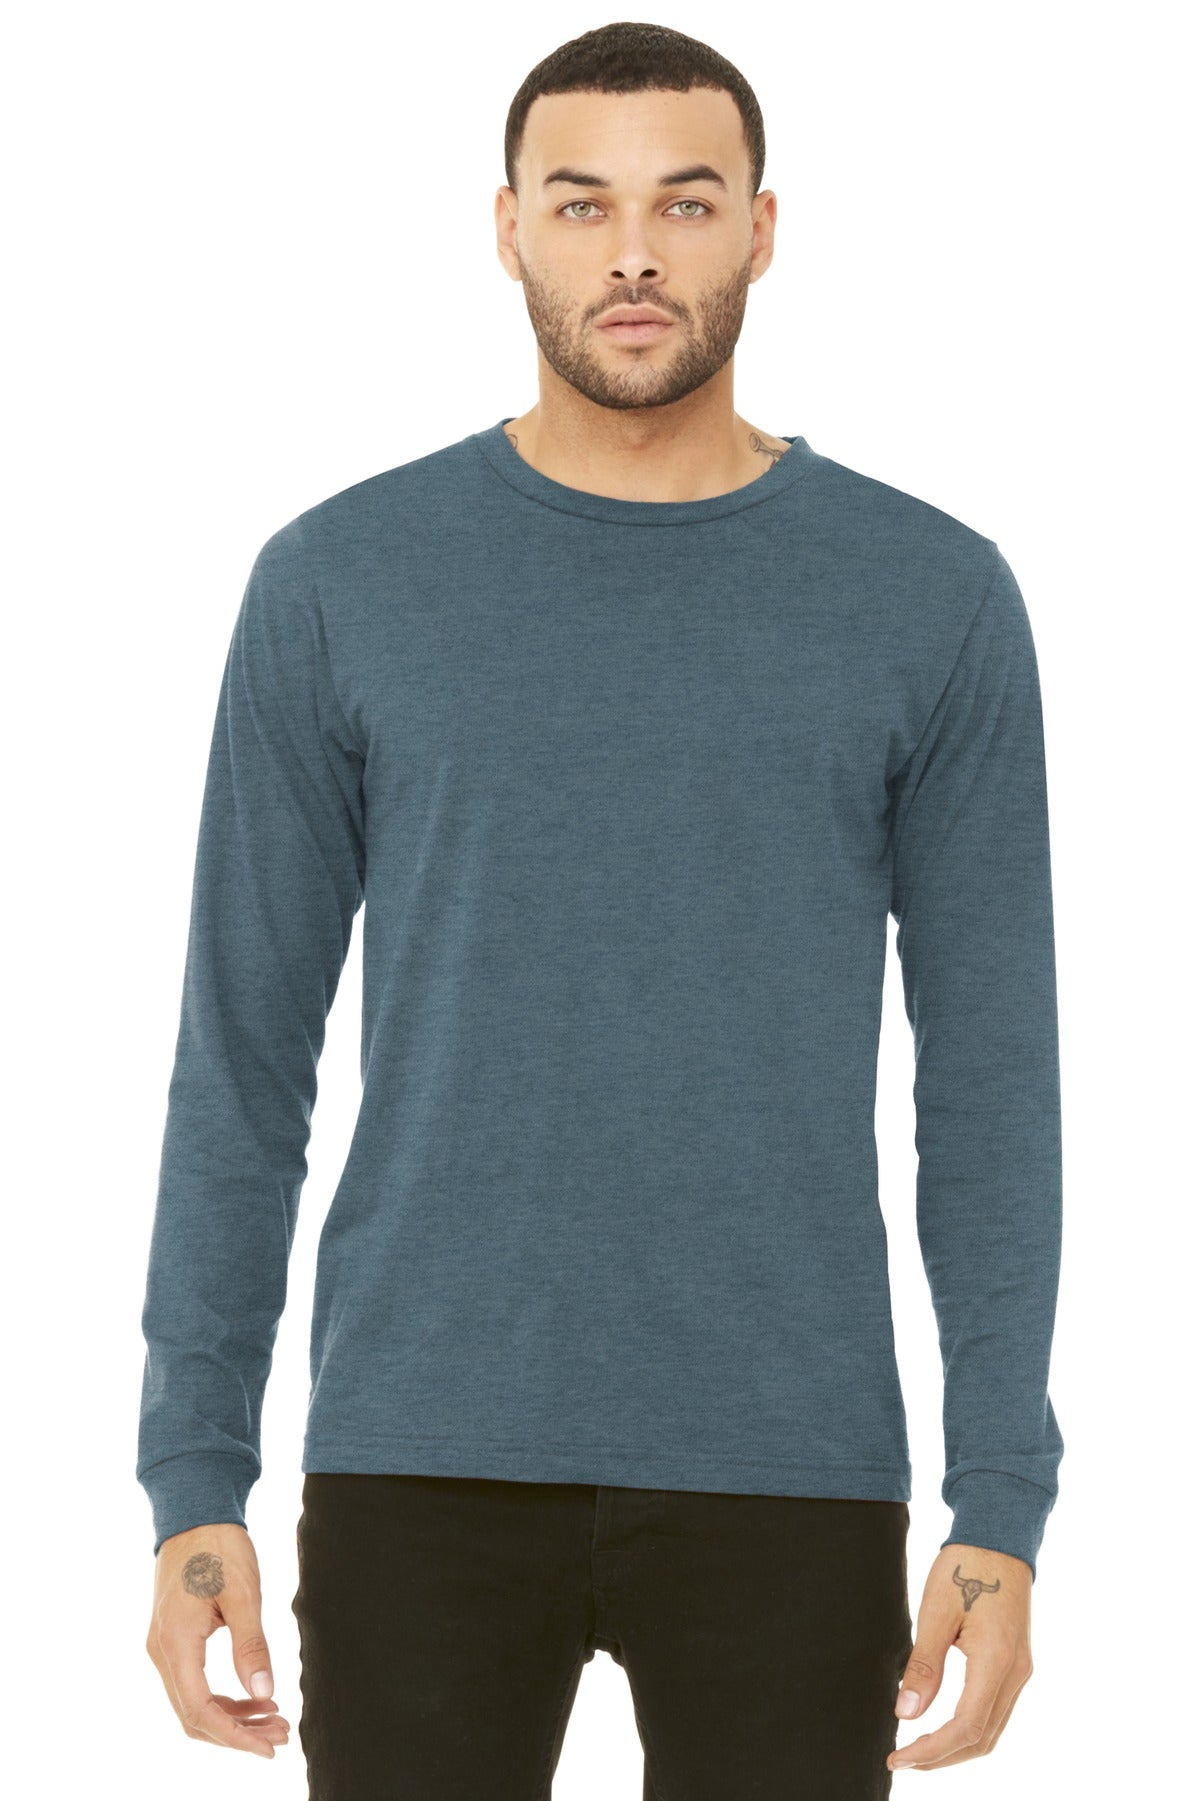 BELLA+CANVAS  Unisex Jersey Long Sleeve Tee